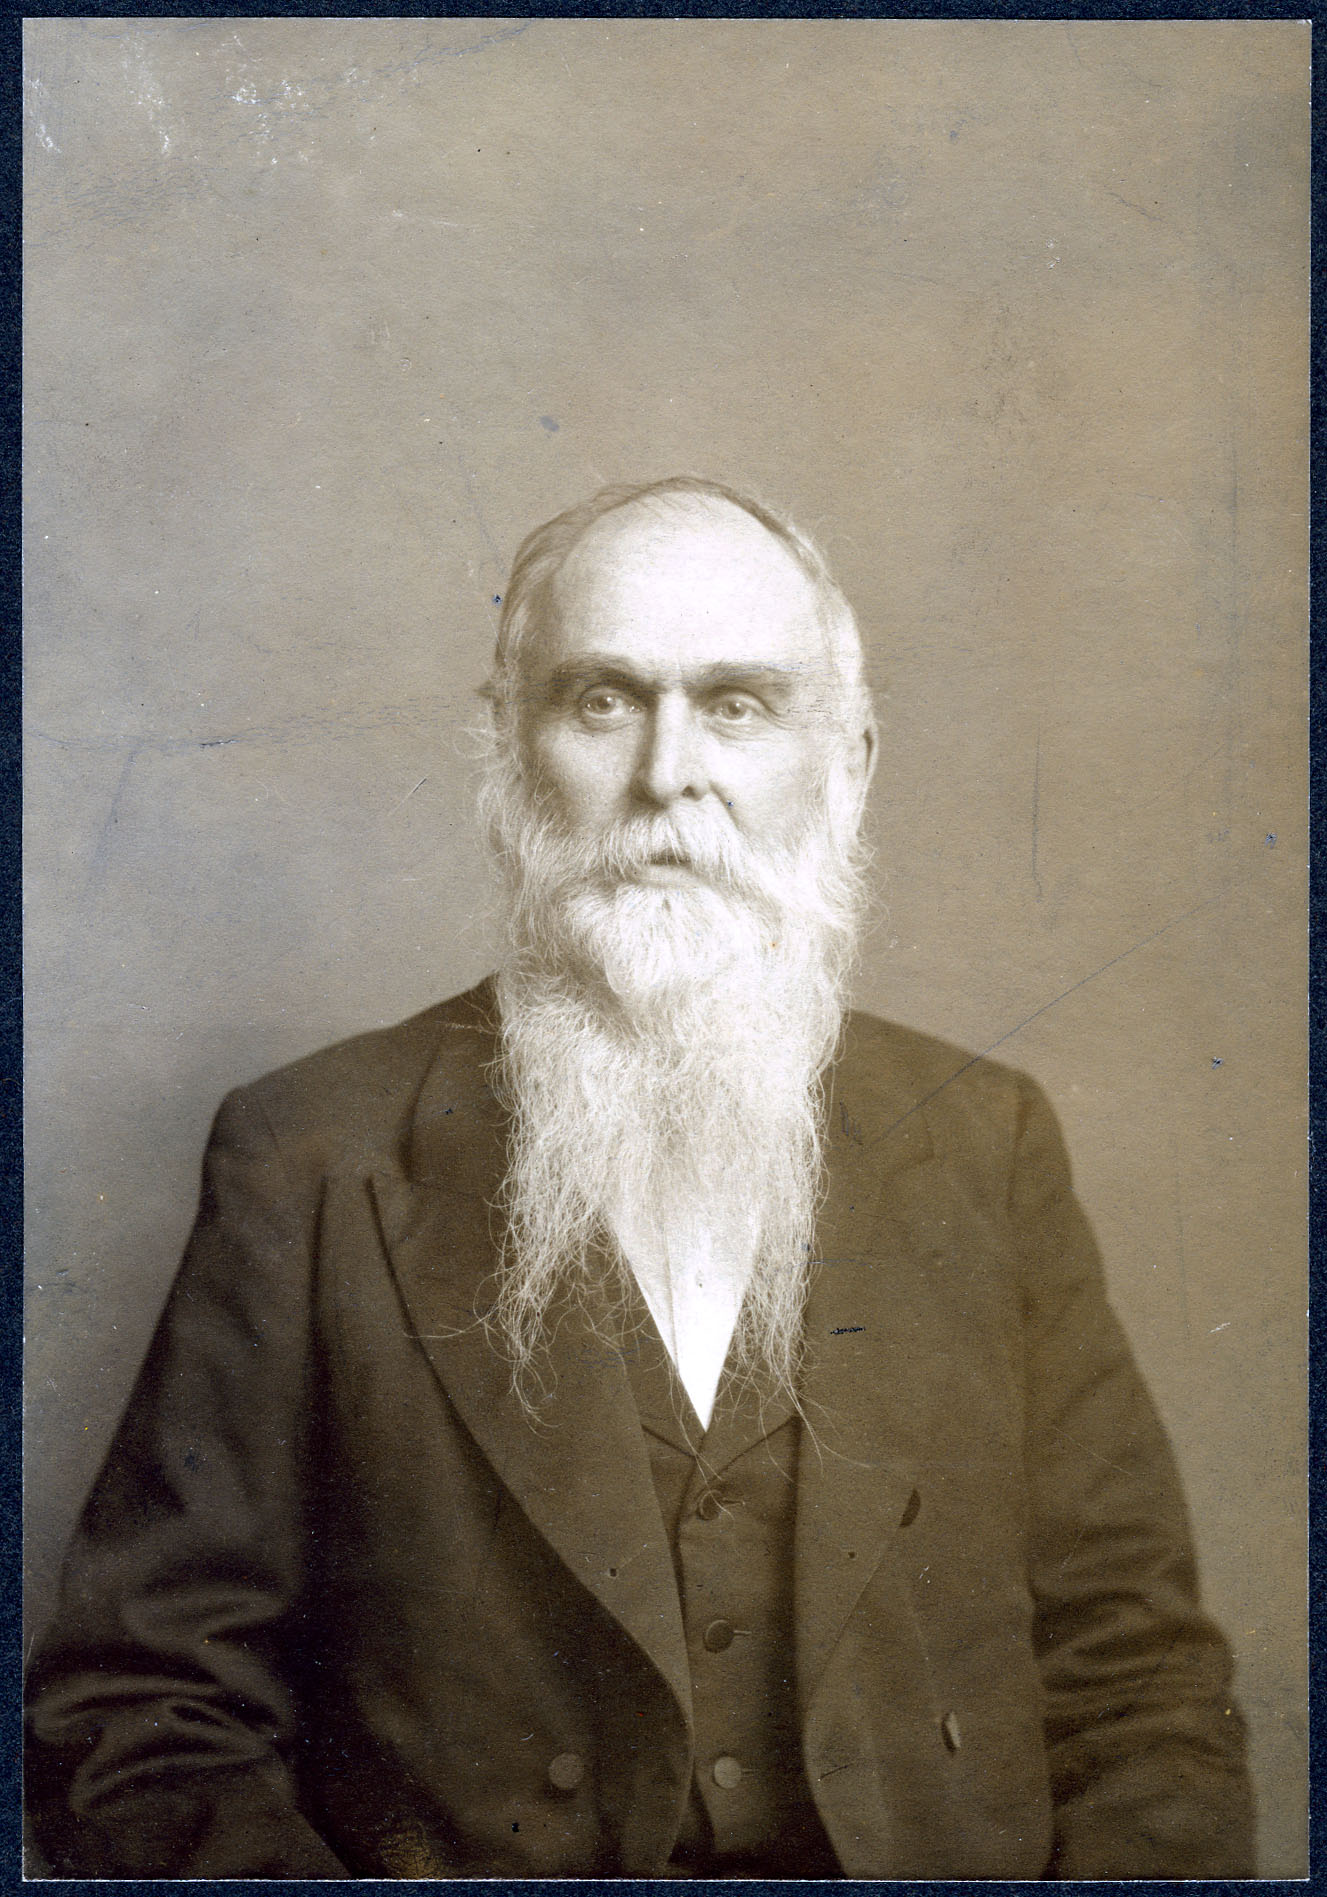 Image of Benjamin Smith Lyman, 1902